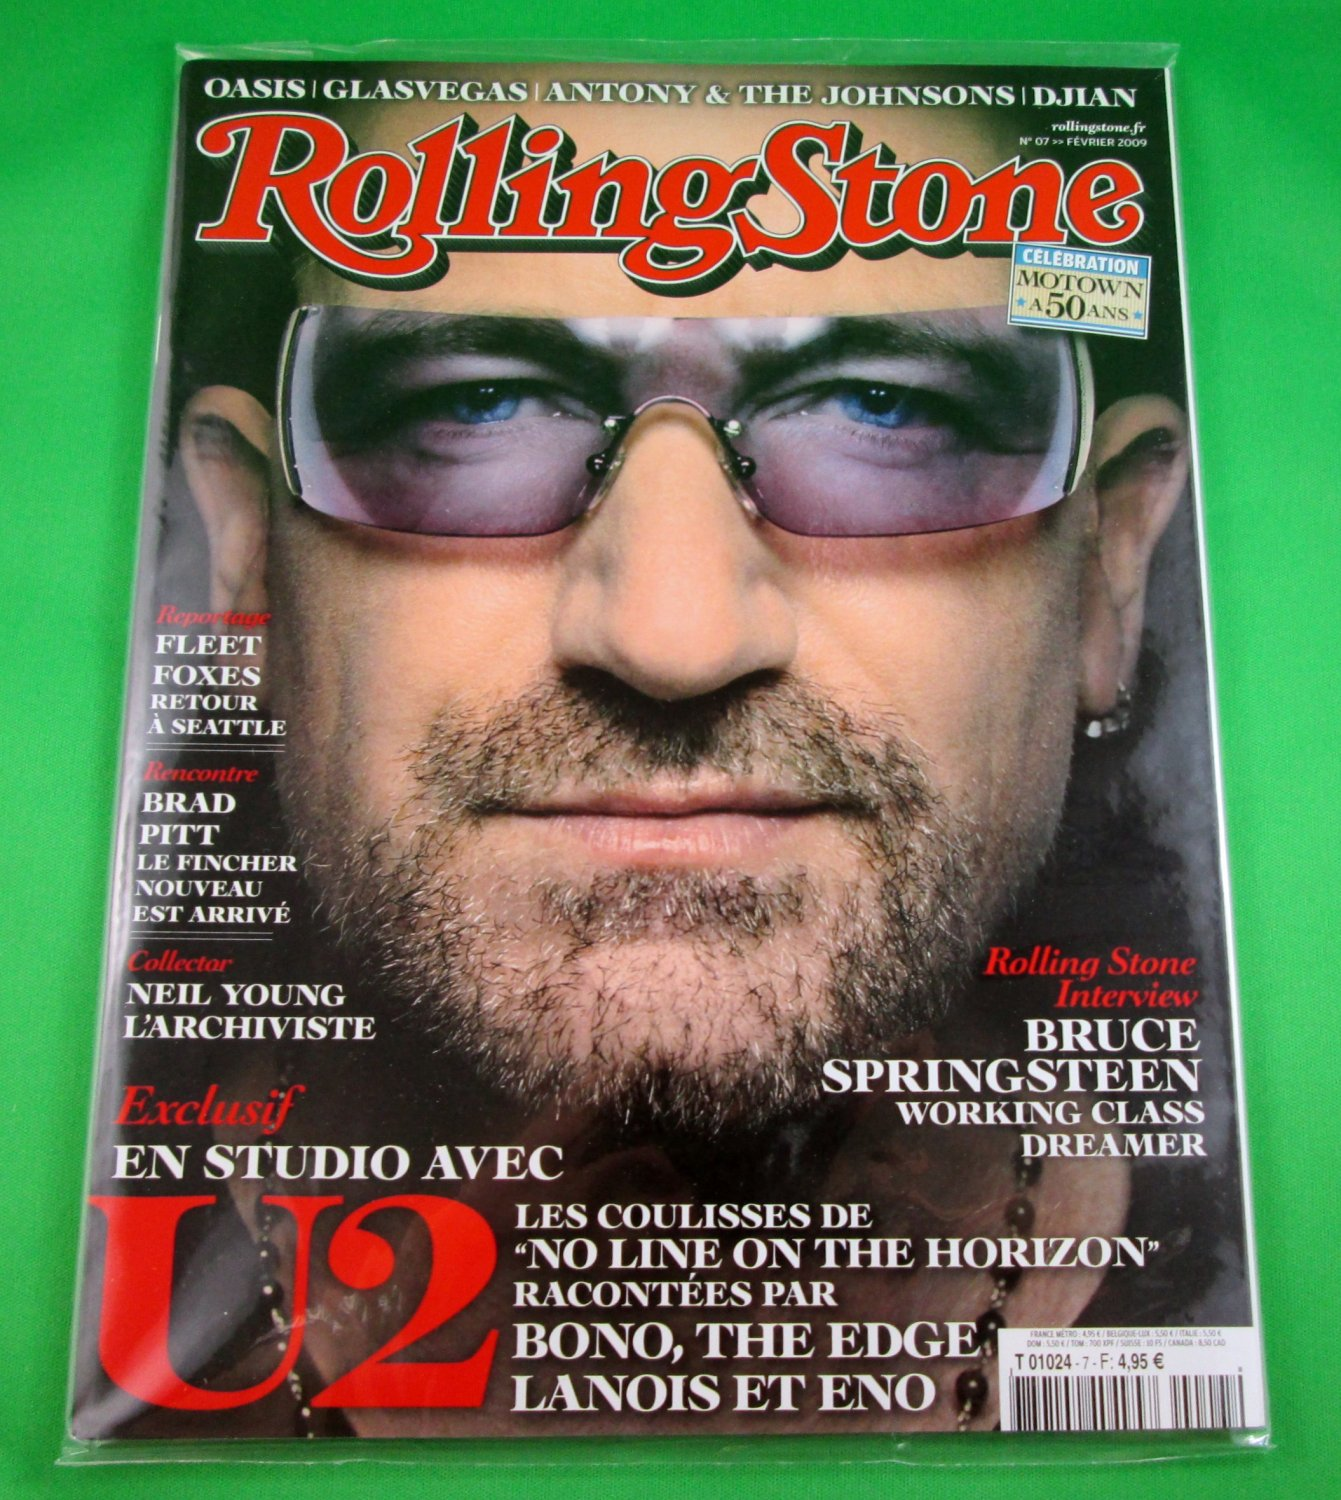 FRENCH LANGUAGE ROLLING STONE MAGAZINE #07 February 2009 U2 BONO New Unread Copy